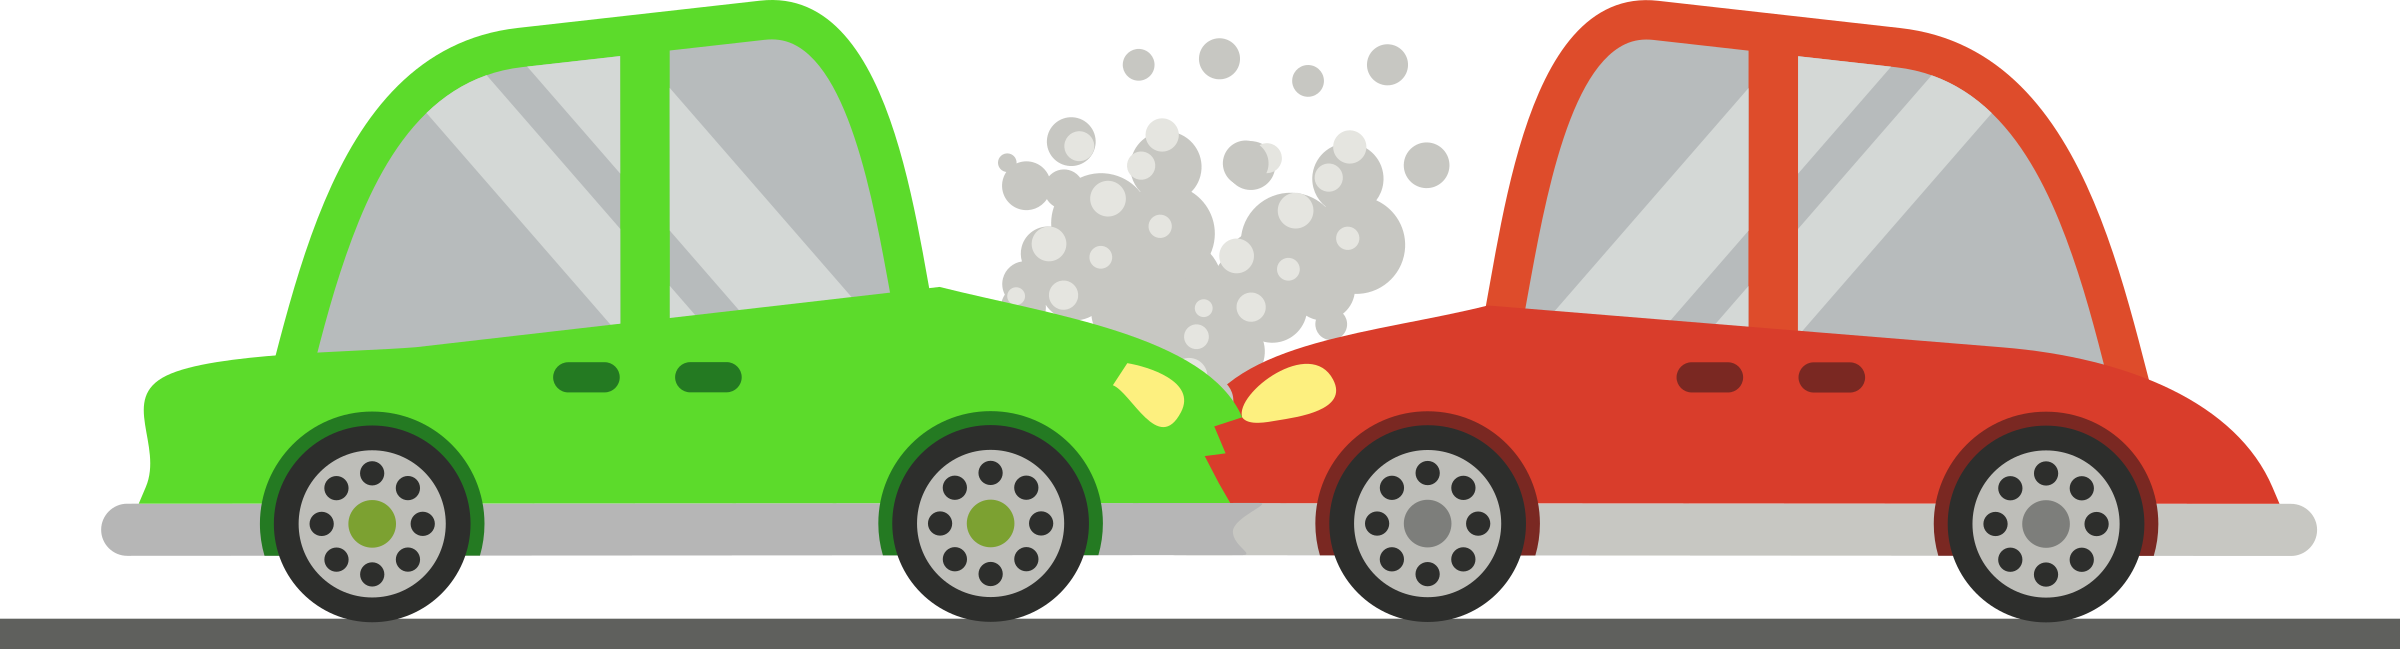 Car on the road clipart free stock Clipart - Two Cars Crash free stock